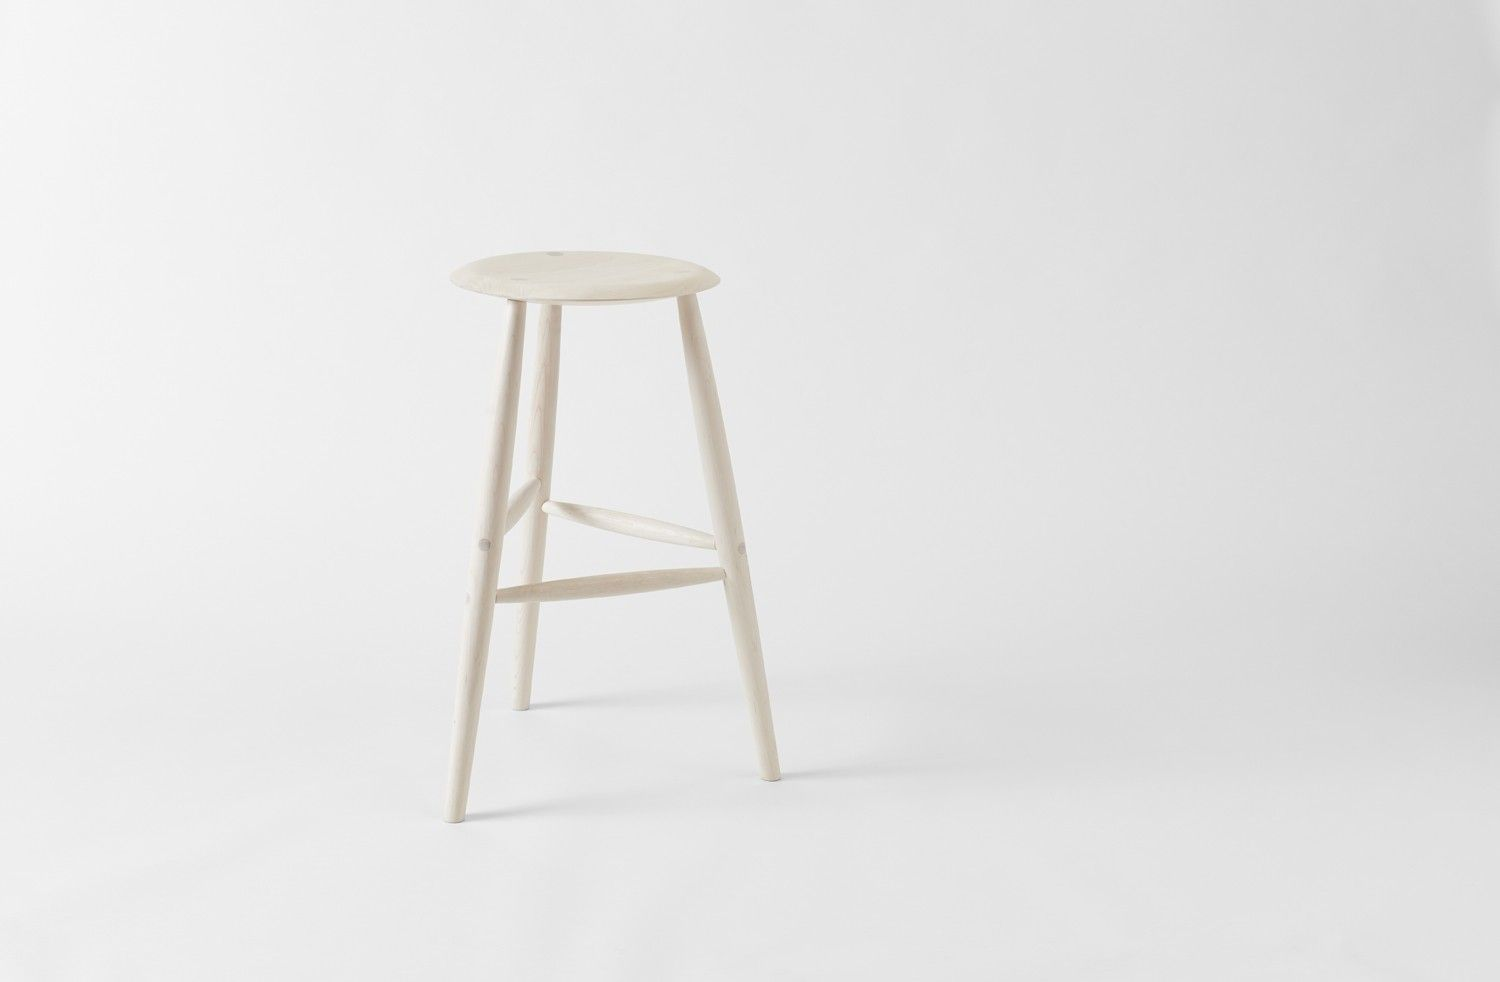 Sawkille Co. Bar Stool in Bleached Maple | Scandi Salt Box ...